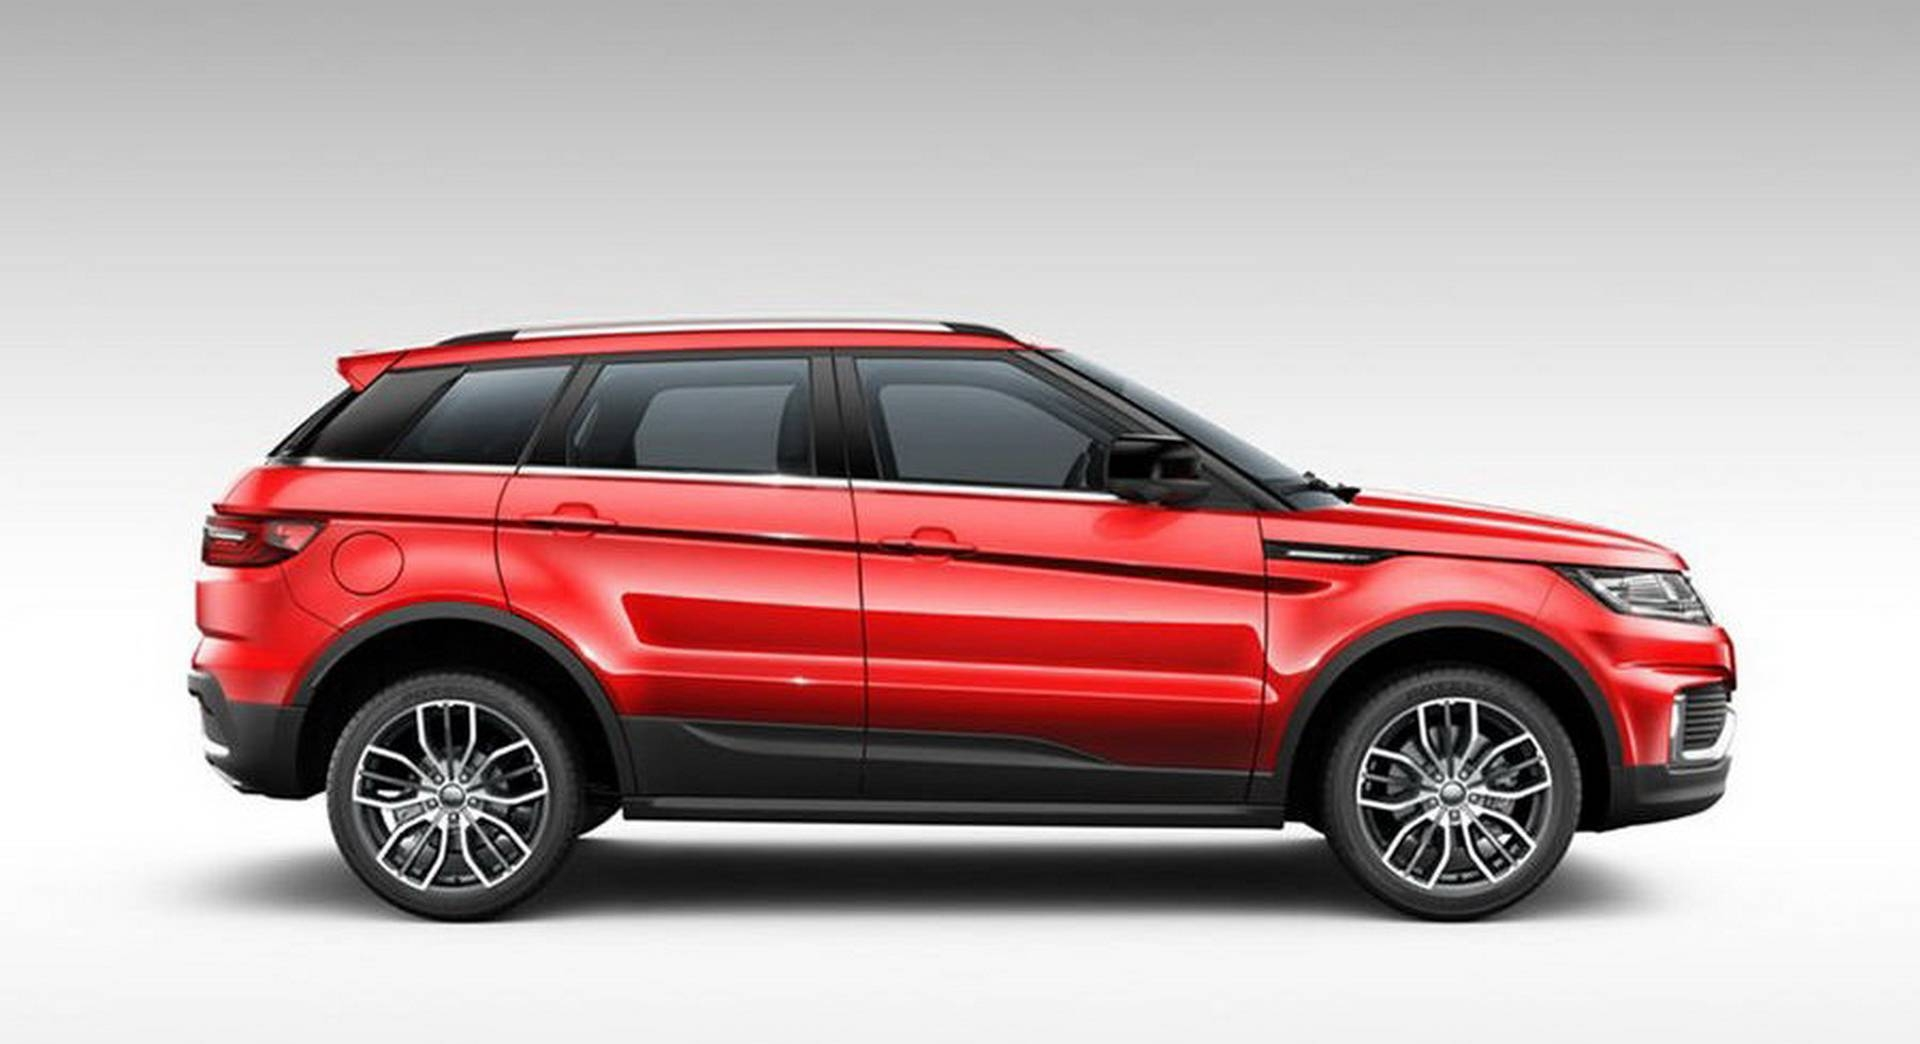 Chinese Automaker Jiangling Forced To Stop Production Of Its